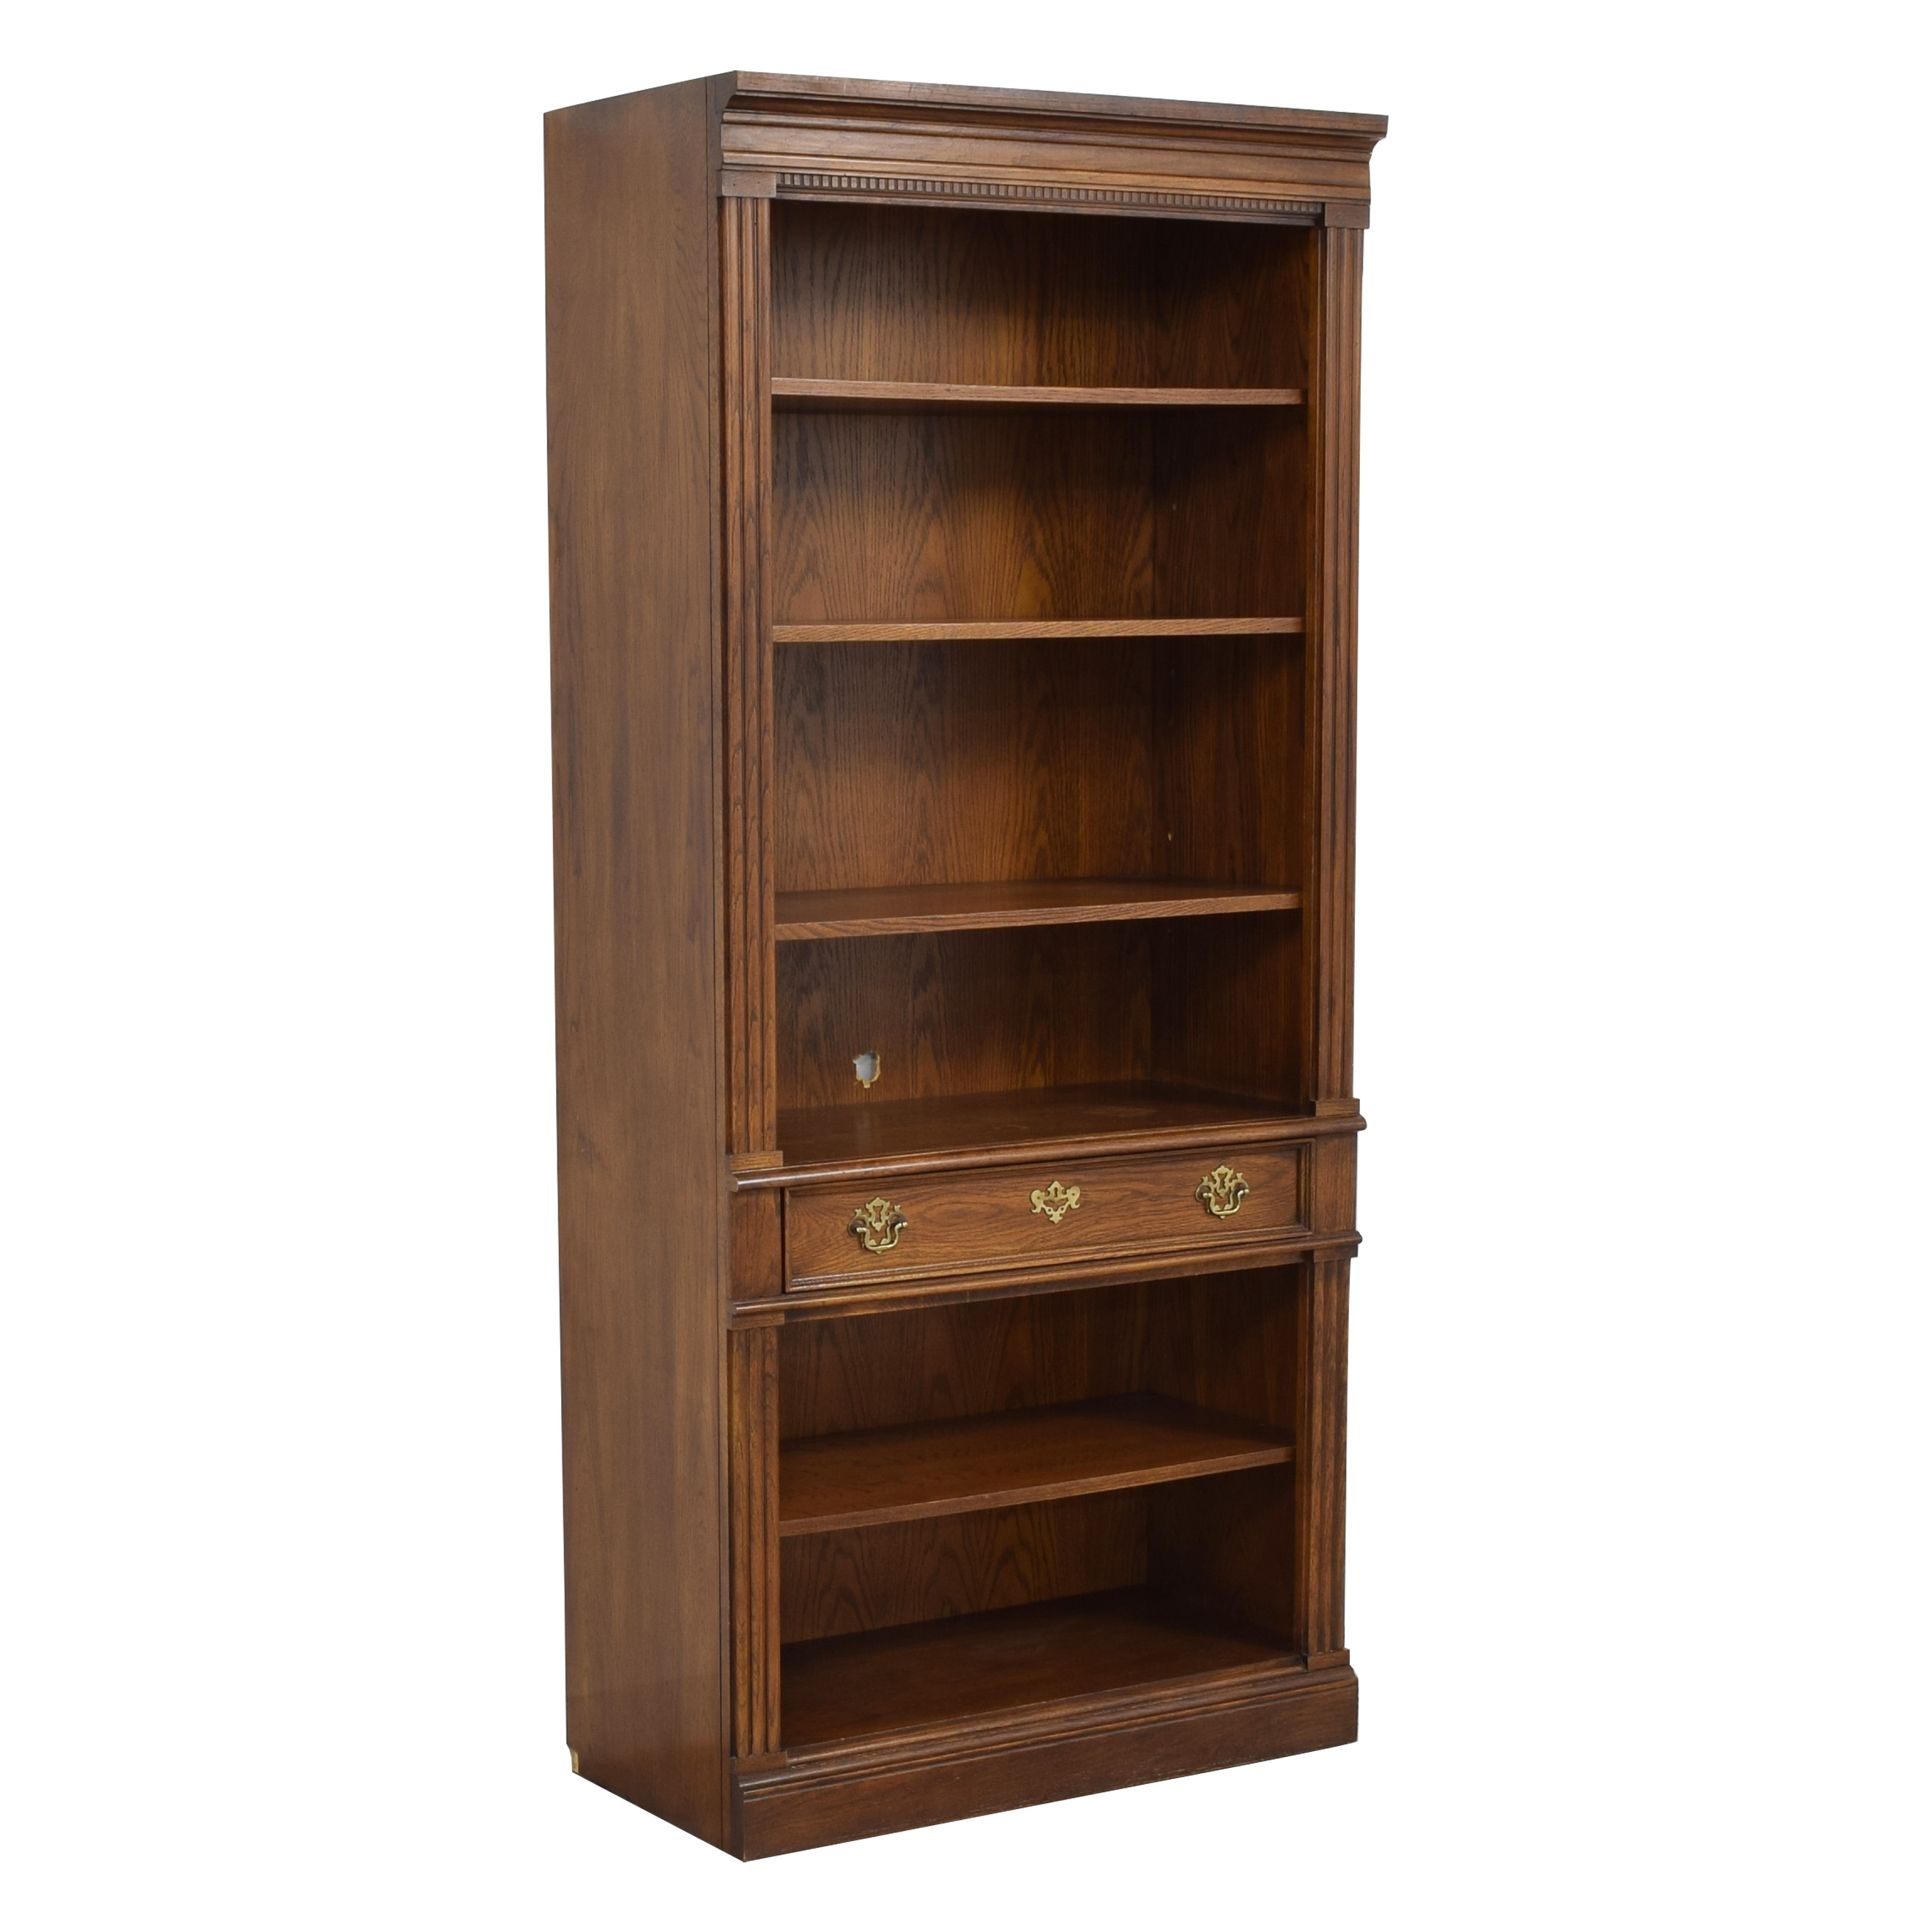 buy Thomasville Thomasville Bookself with Drawer online